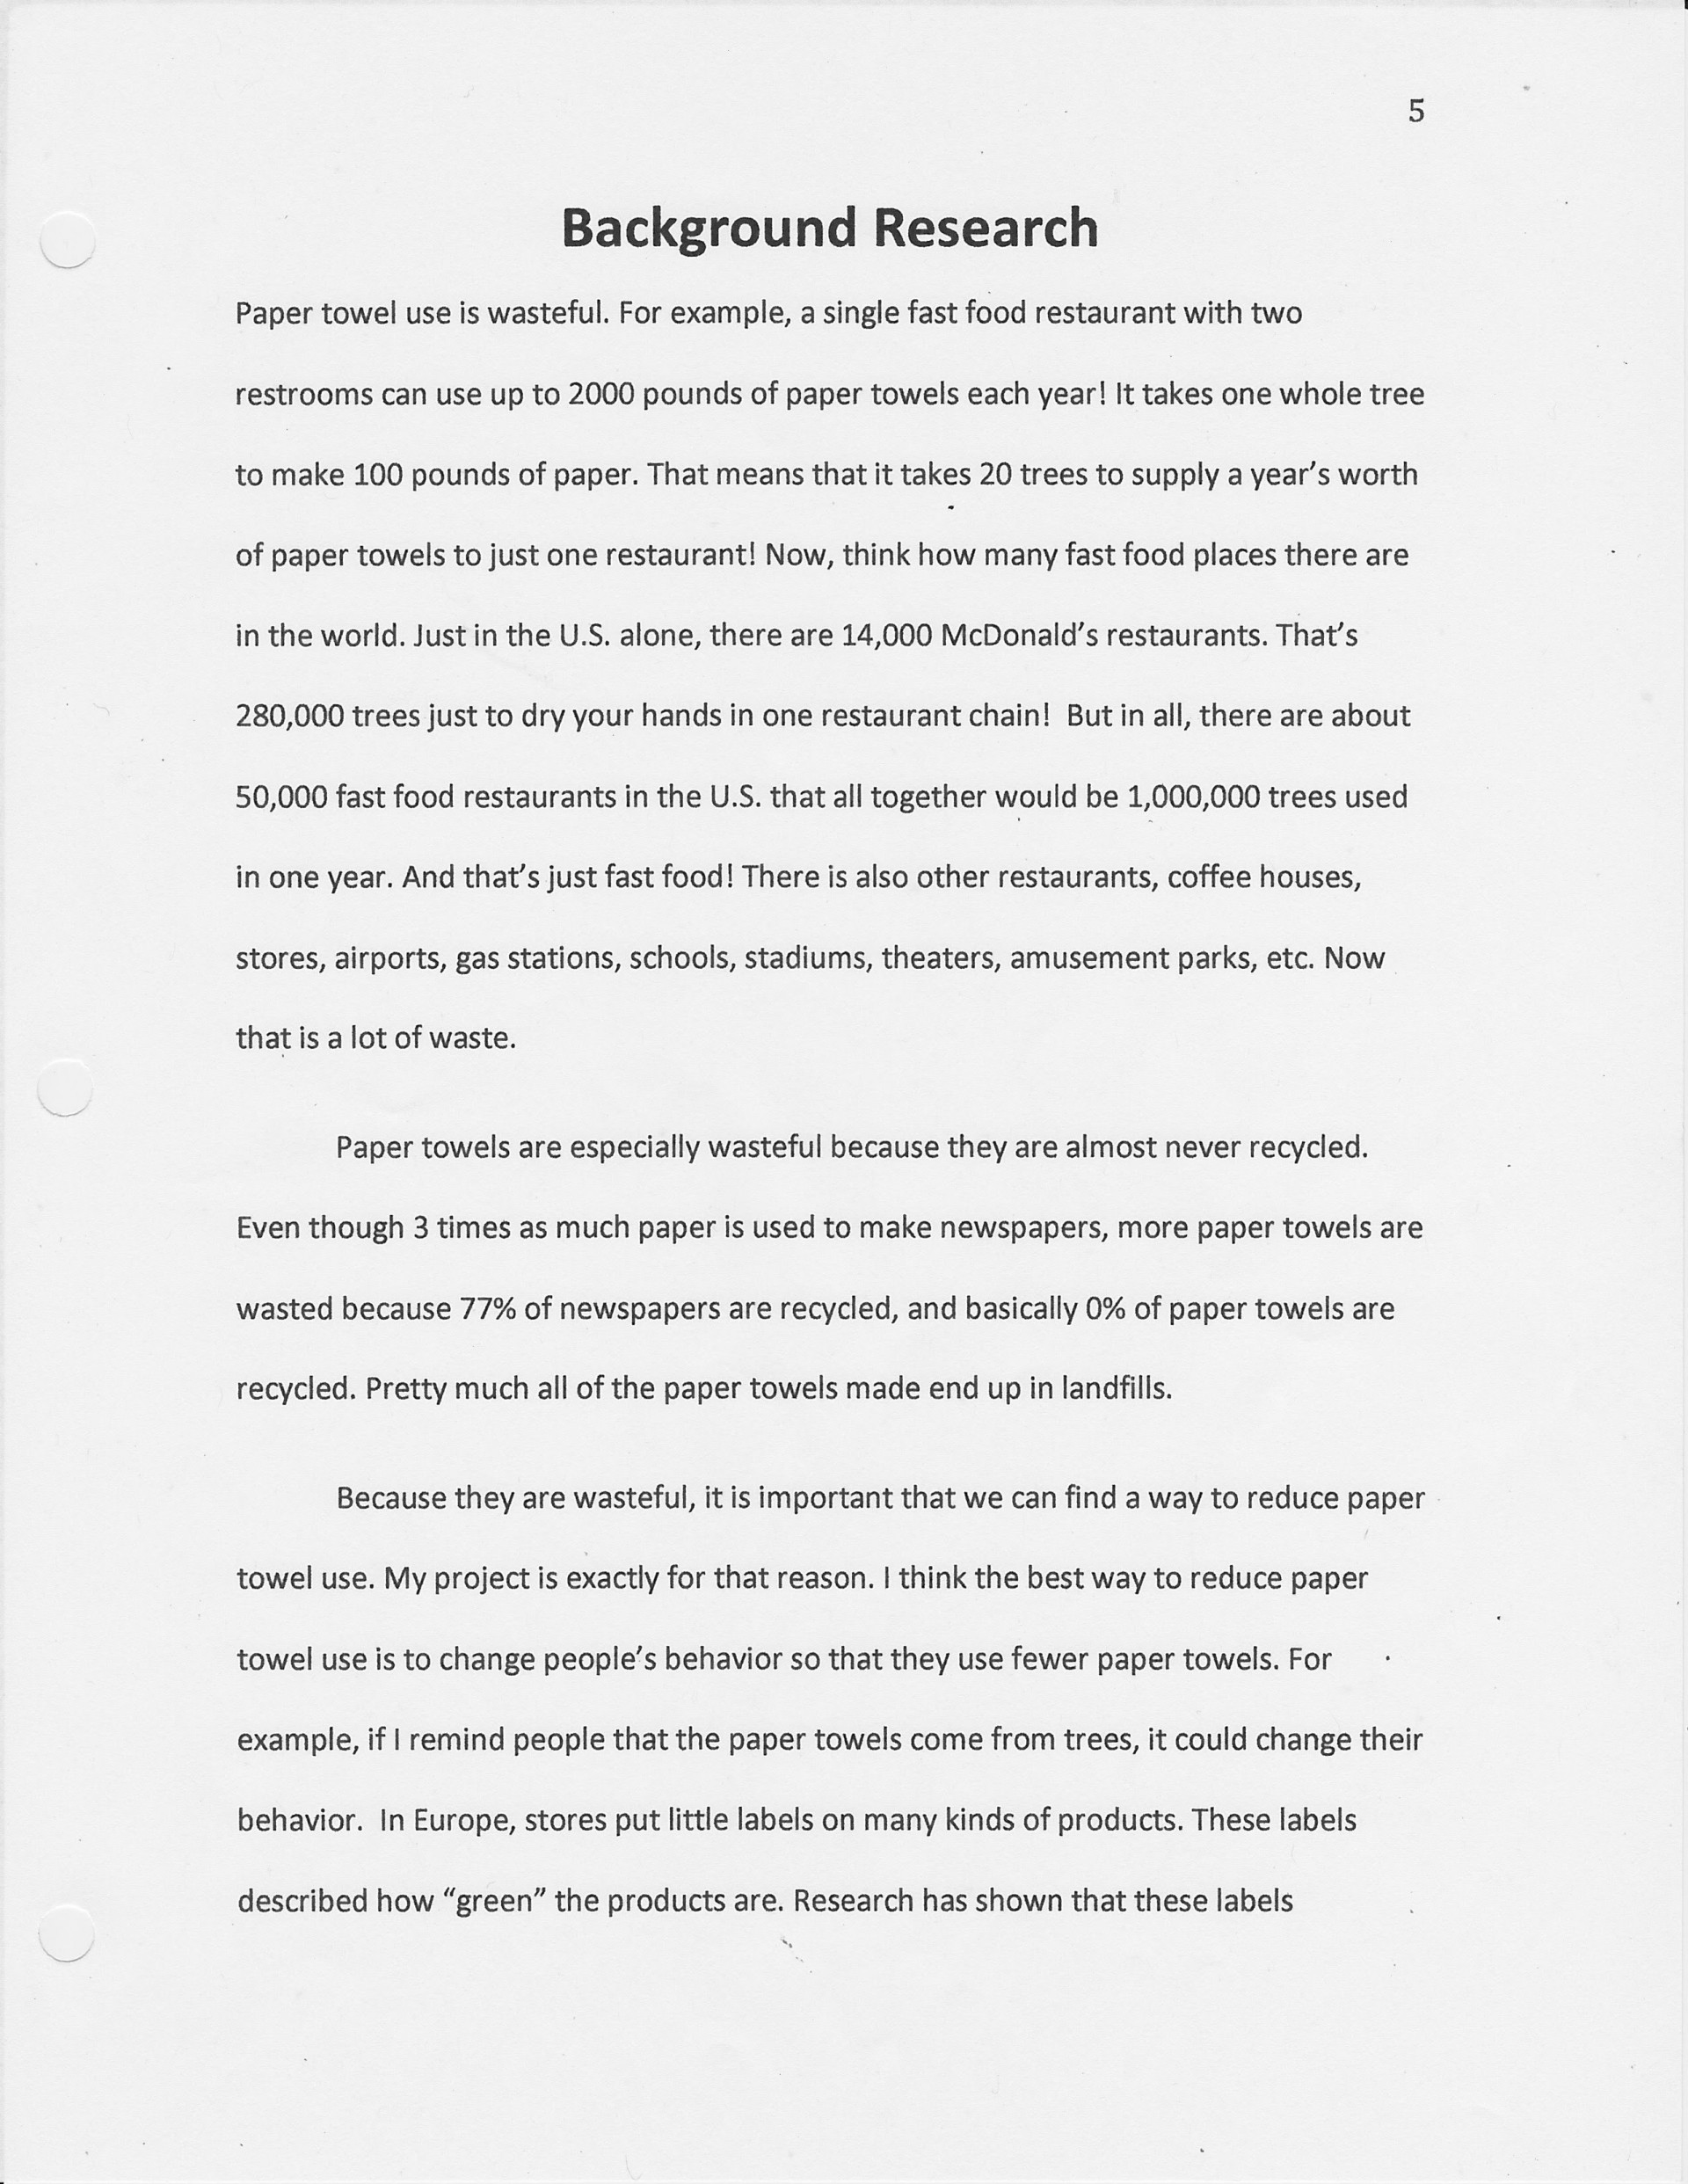 004 Research Paper Scn 0005heightu003d320u0026widthu003d247 Sample Dreaded Of Outline Template Example In Mla Format Style 1920